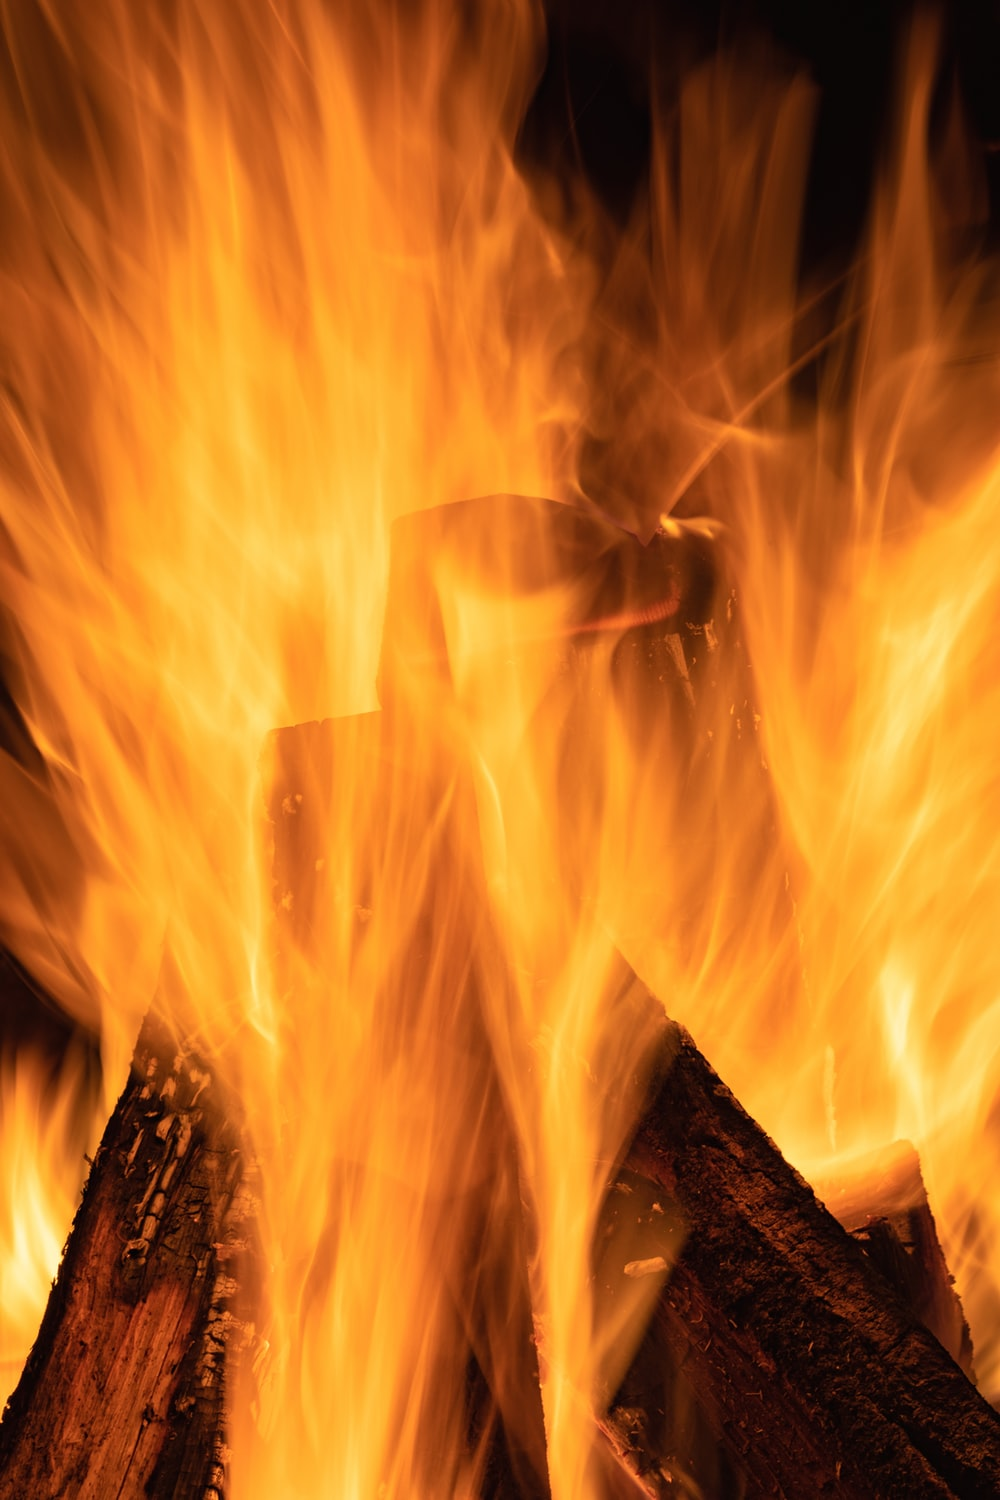 fire on brown wooden log